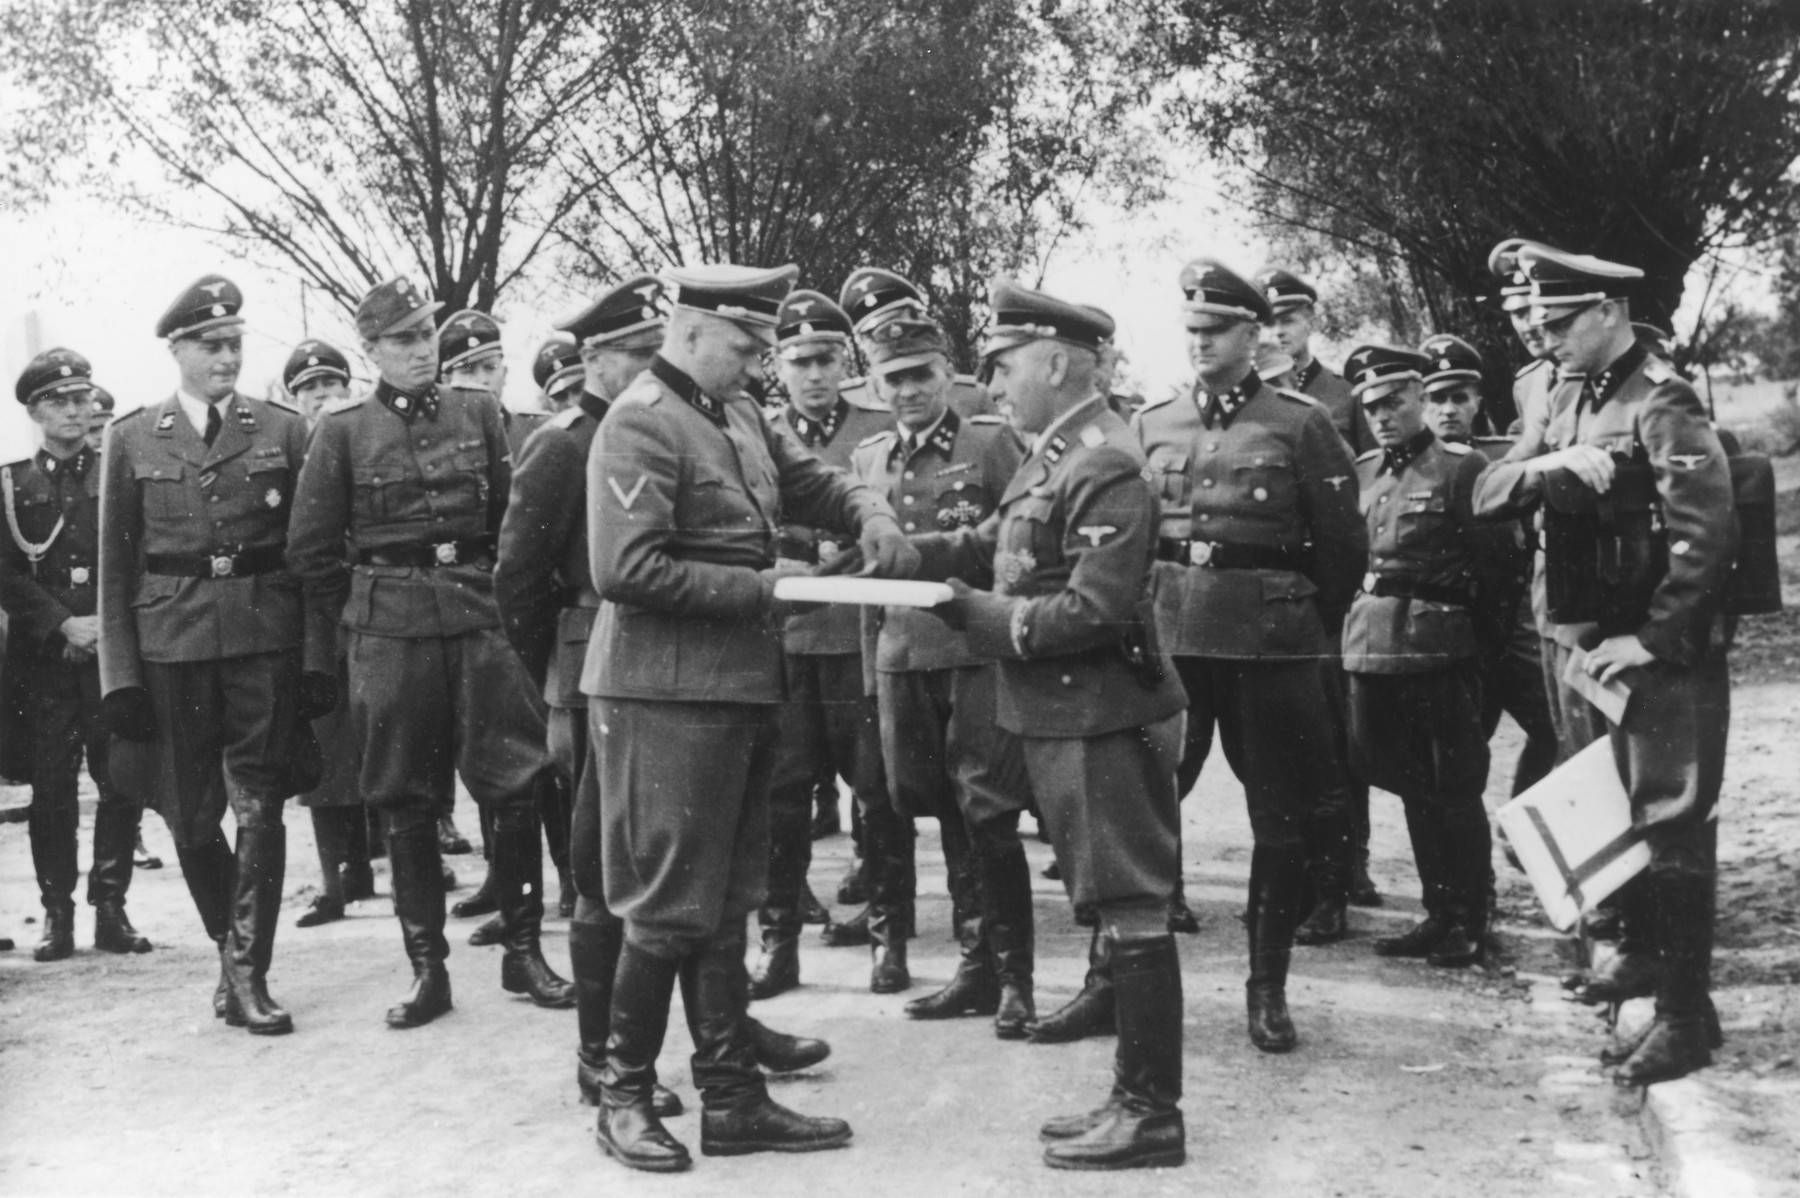 "Nazi officers watch as Commandant Richard Baer exchanges documents with Karl Bischoff during the dedication of the new SS hospital in Auschwitz.  The original caption reads ""Besichtigung"" (tour).  Dr. Eduard Wirths stands on the far left.  Dr. Heinz Baumkoetter is fifth from the left.  In the center are Commandant Richard Baer, Karl Hoecker and Rudolf Hoess and Karl Moeckel.  Holding the documents on the right is (most probably Werner Jothann). To the right of Wirths, is (probably August Harbaum, adjutant to Richard Gluecks)."